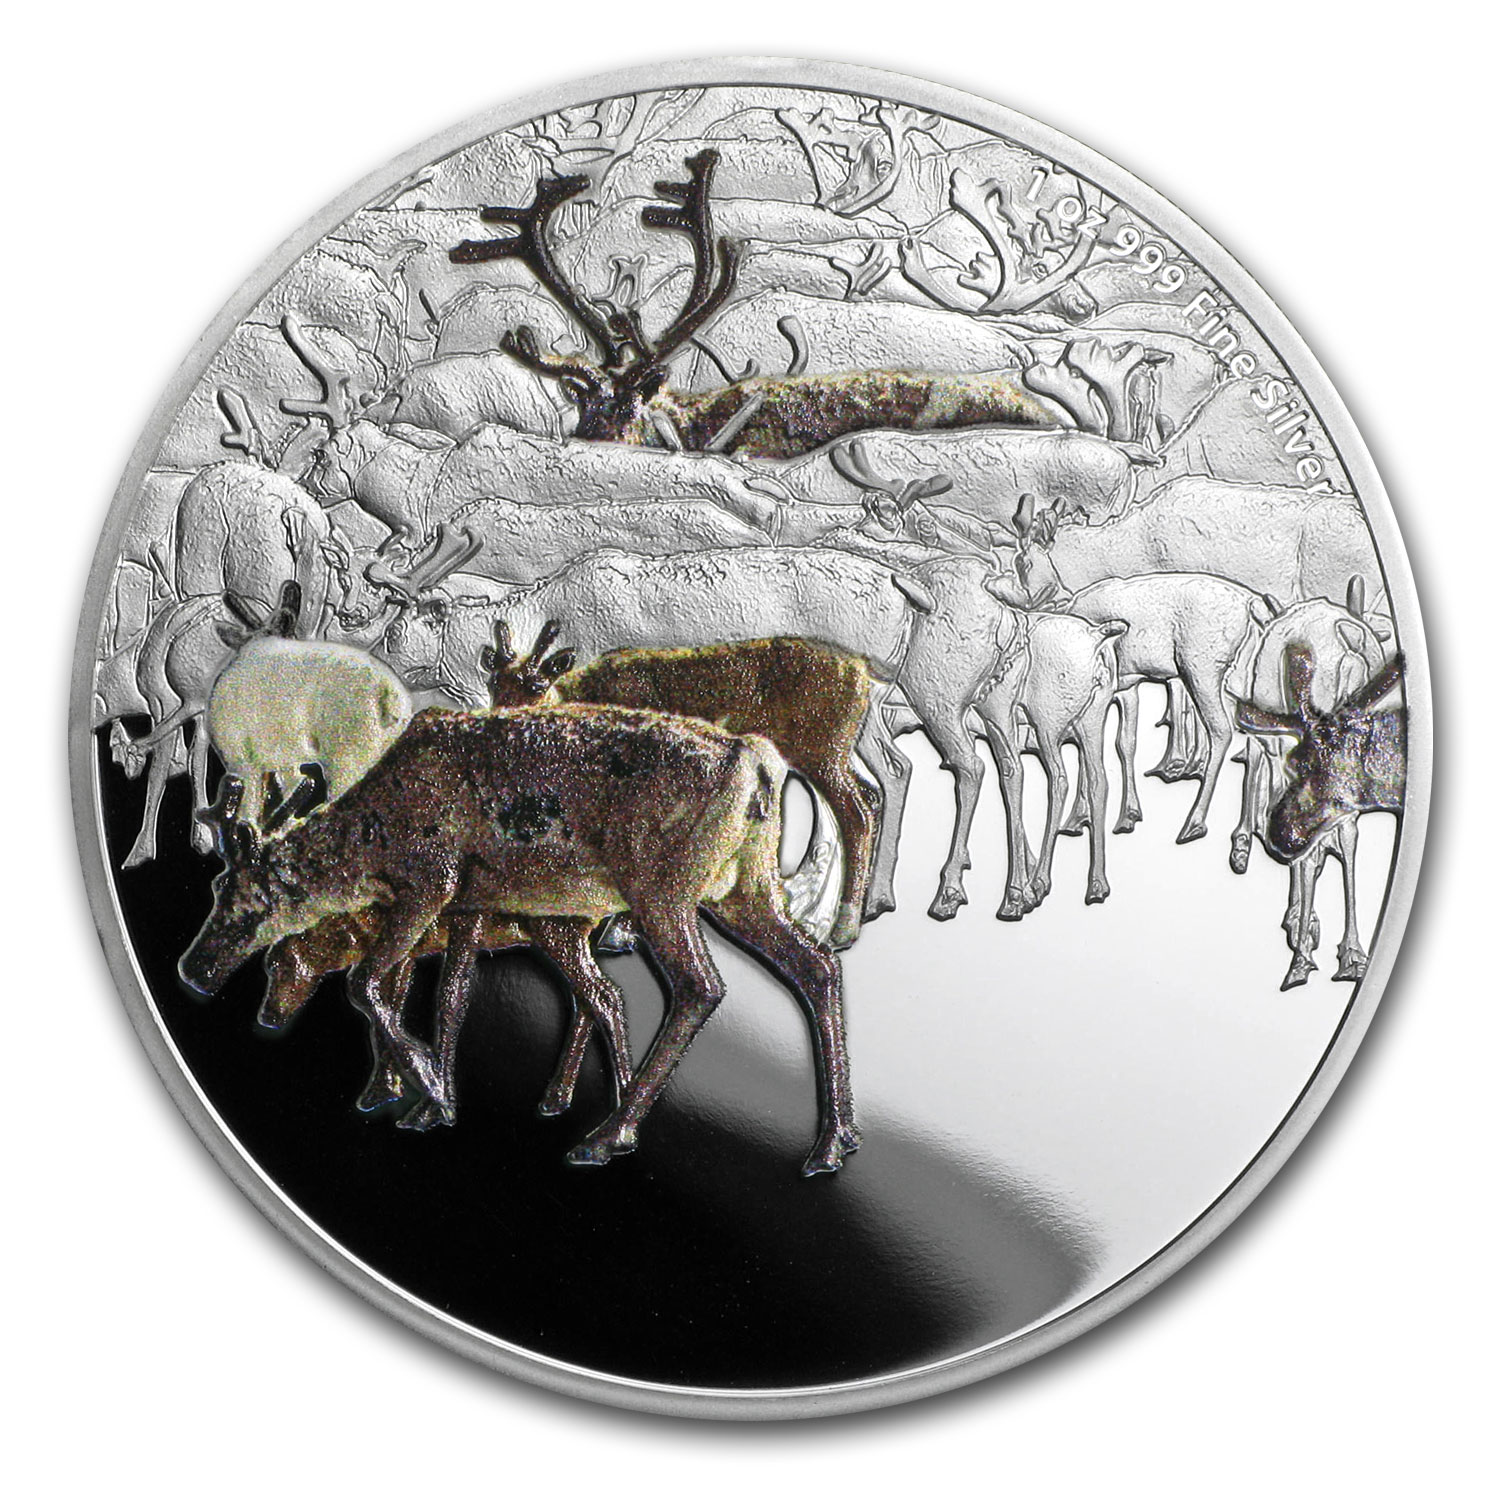 2016 Niue 1 oz Silver Great Migrations Caribou Proof